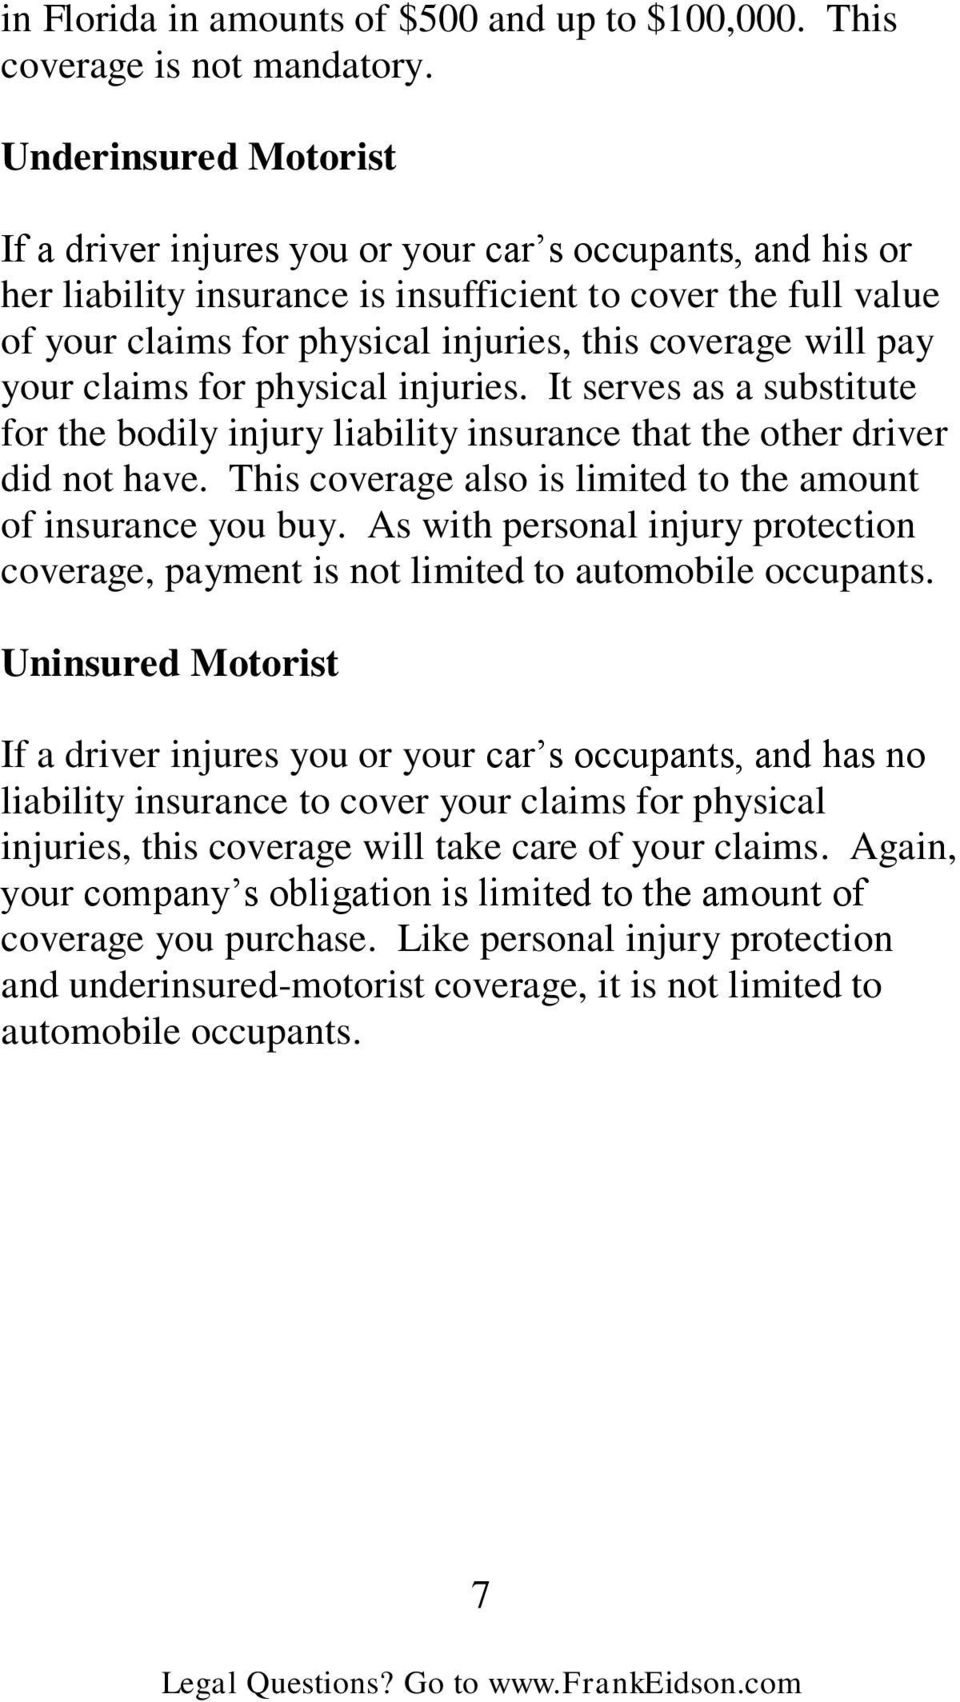 will pay your claims for physical injuries. It serves as a substitute for the bodily injury liability insurance that the other driver did not have.